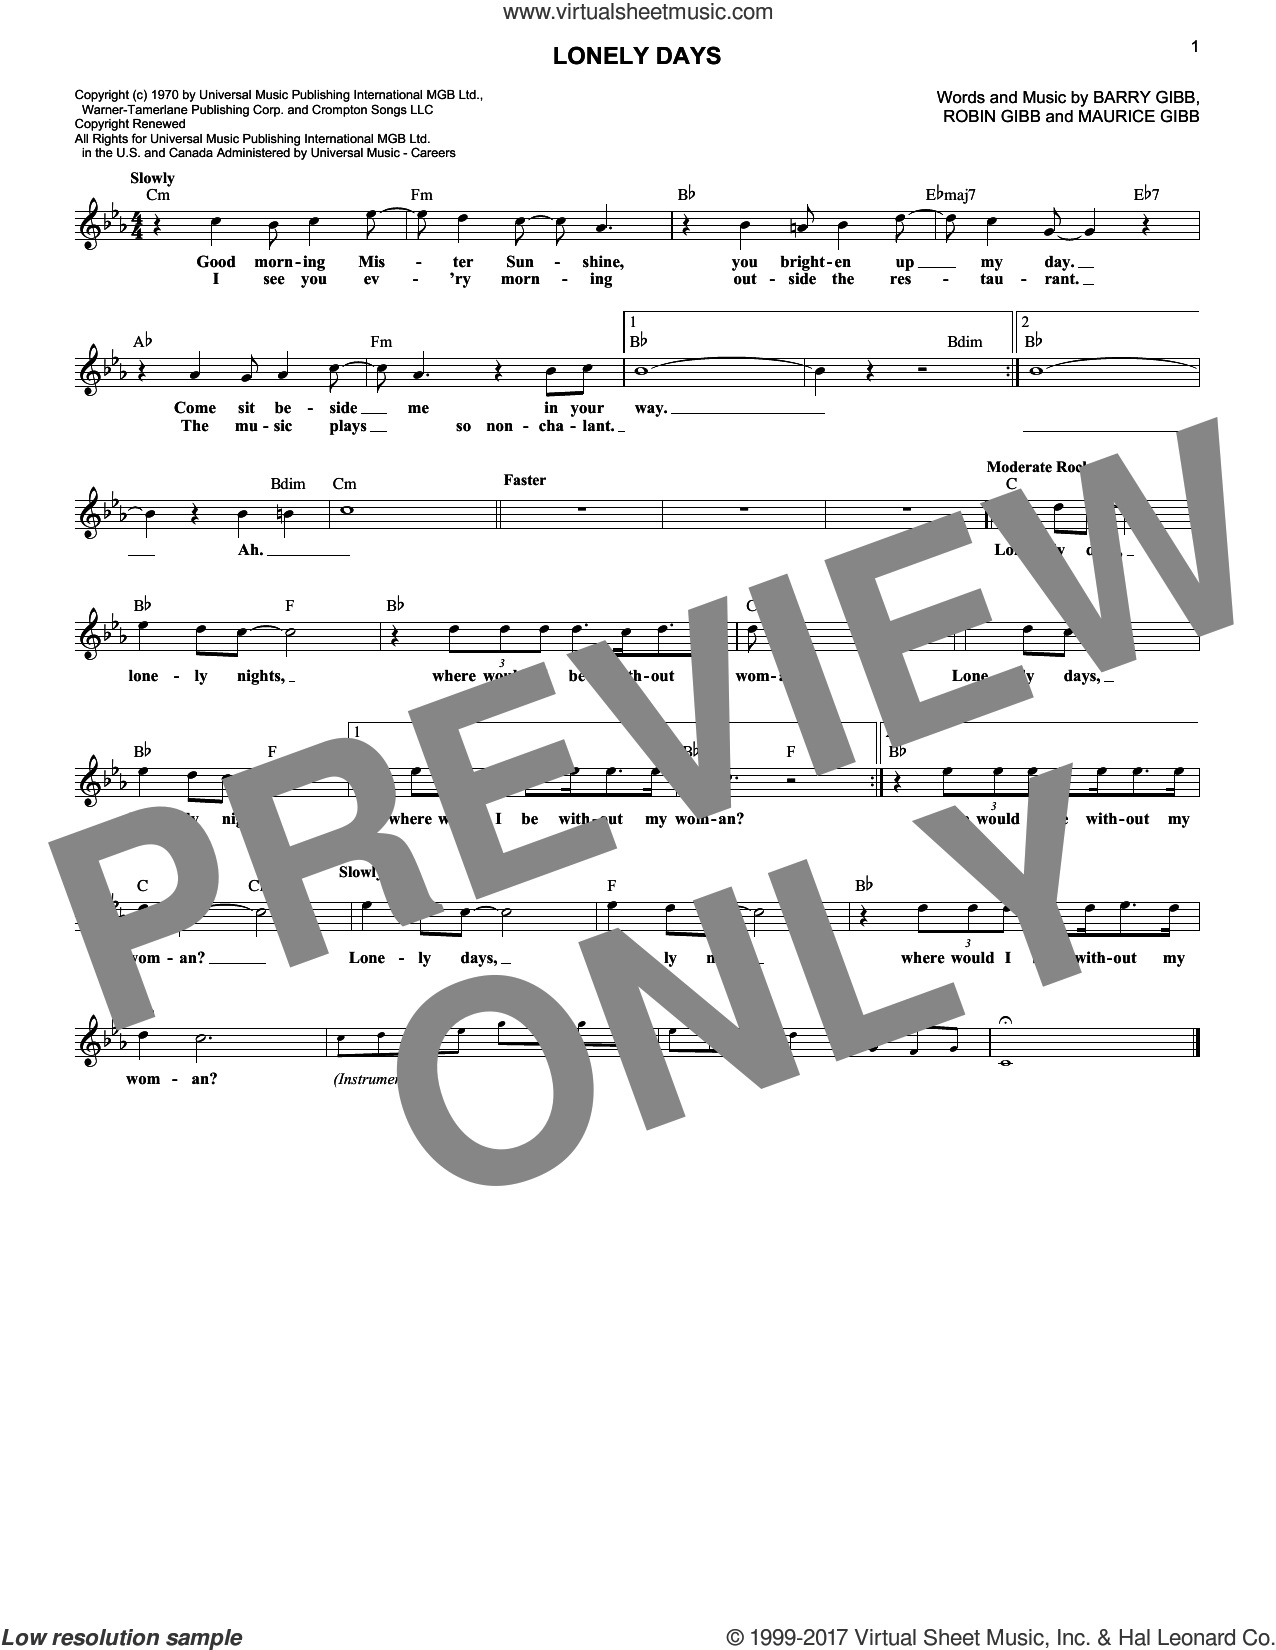 Lonely Days sheet music for voice and other instruments (fake book) by Bee Gees, Barry Gibb, Maurice Gibb and Robin Gibb, intermediate